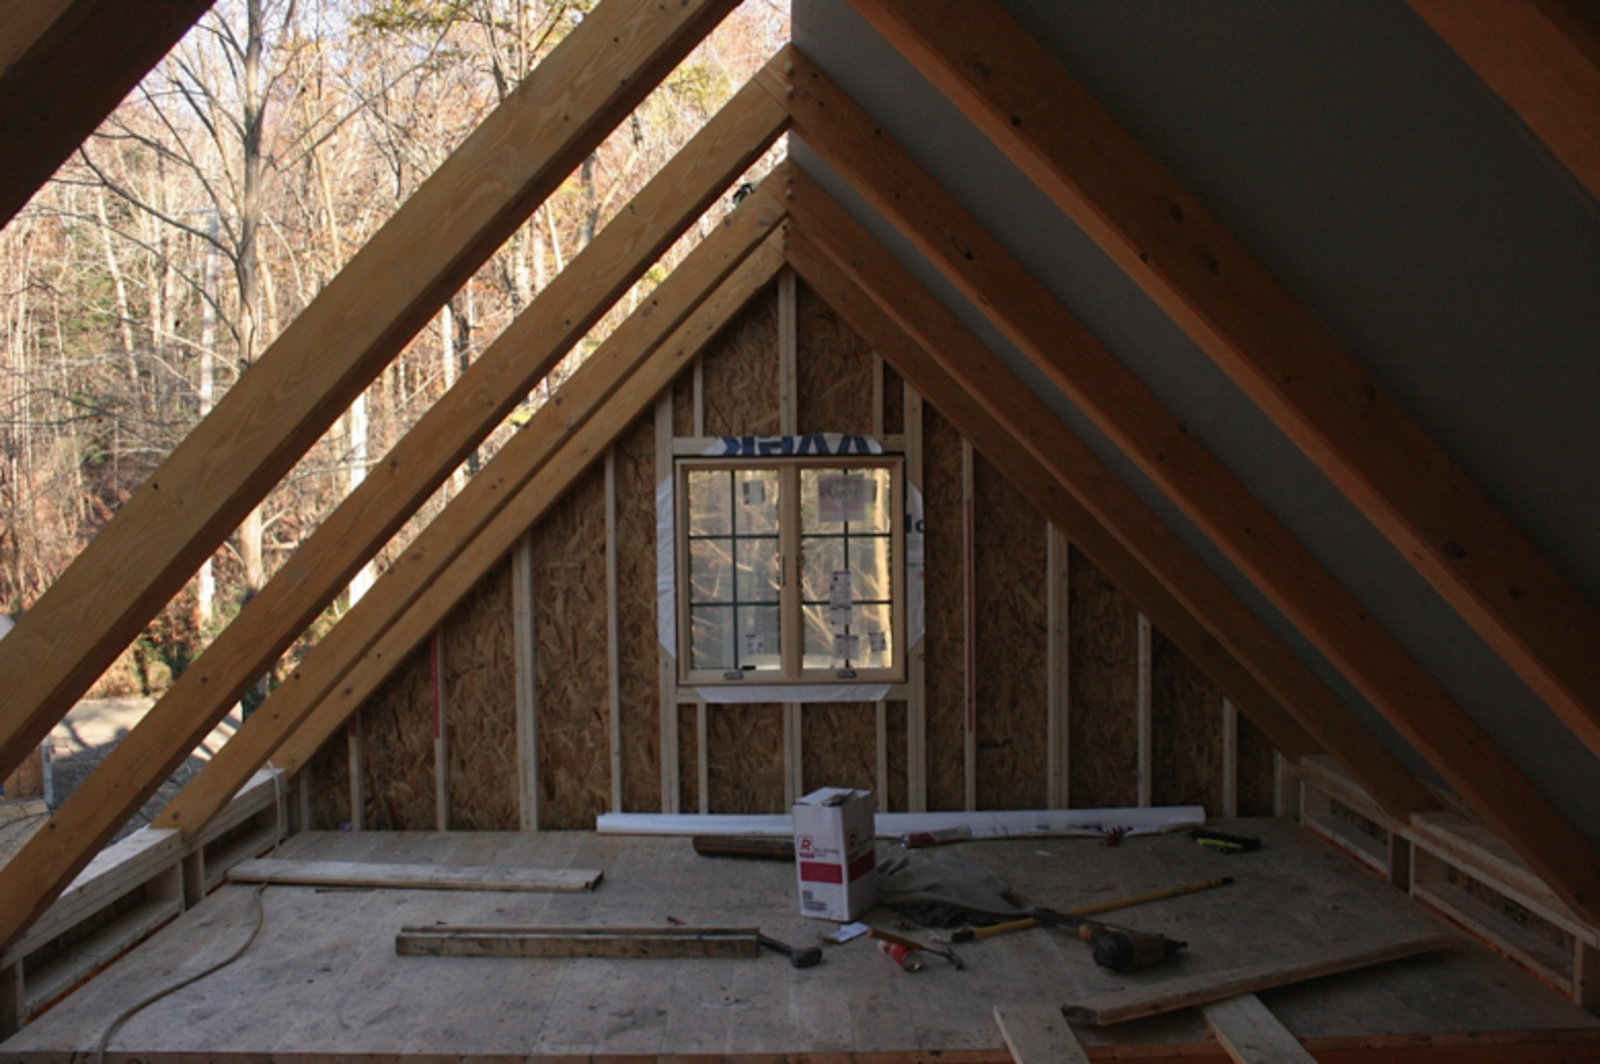 The owners of Bungalow in a Box, a small company based in Maine, use a unique combination of materials and methods for each customized structure. Relying on traditional framing techniques, the company prefabricates and ships unfinished timber for studios, bungalows, and other structures in various sizes, leaving the customer to add interior finishes and adapt the home to suit their needs.